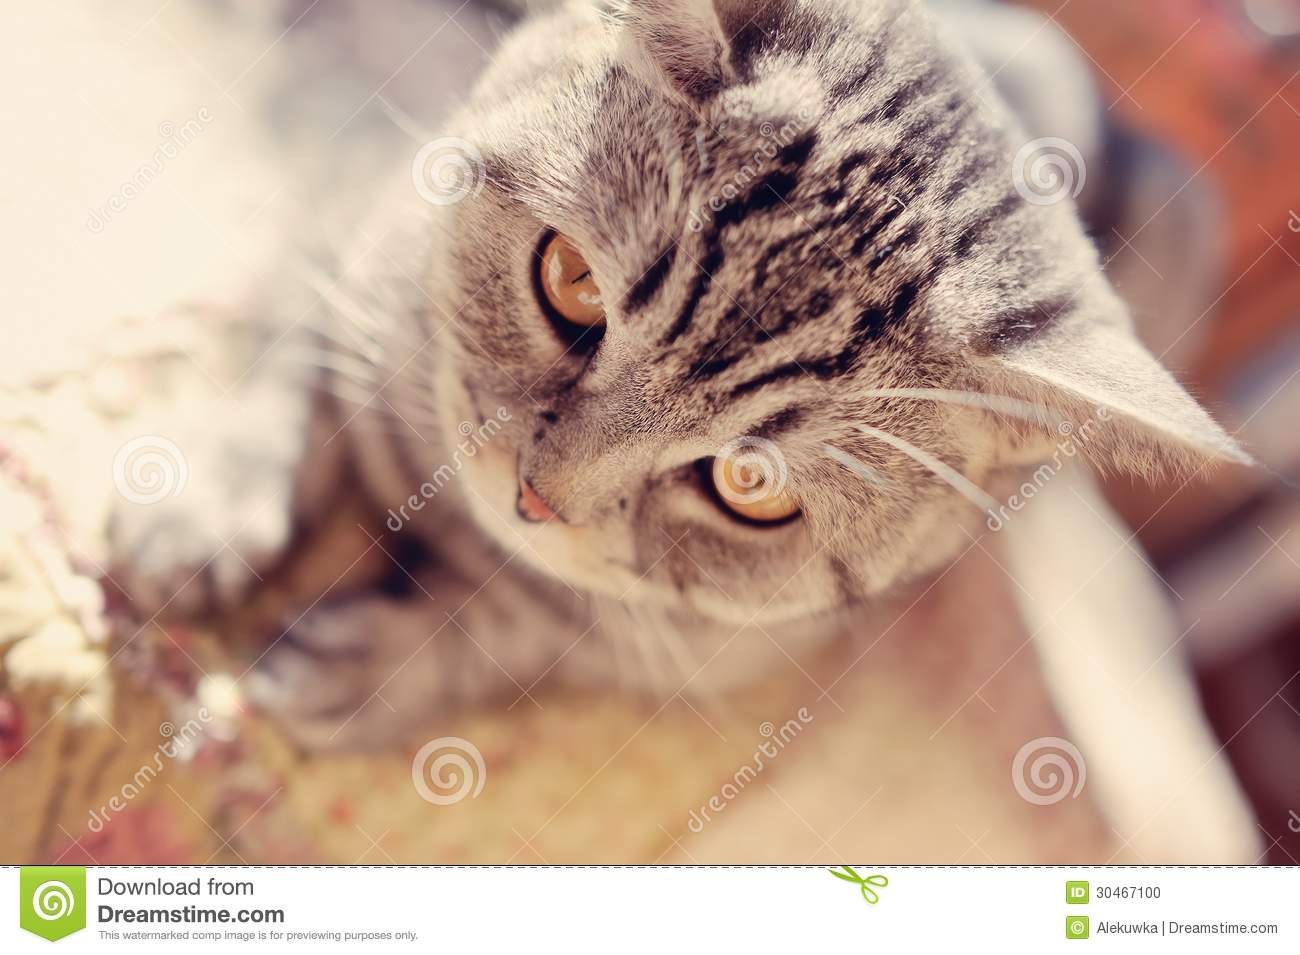 different types of worms in cats